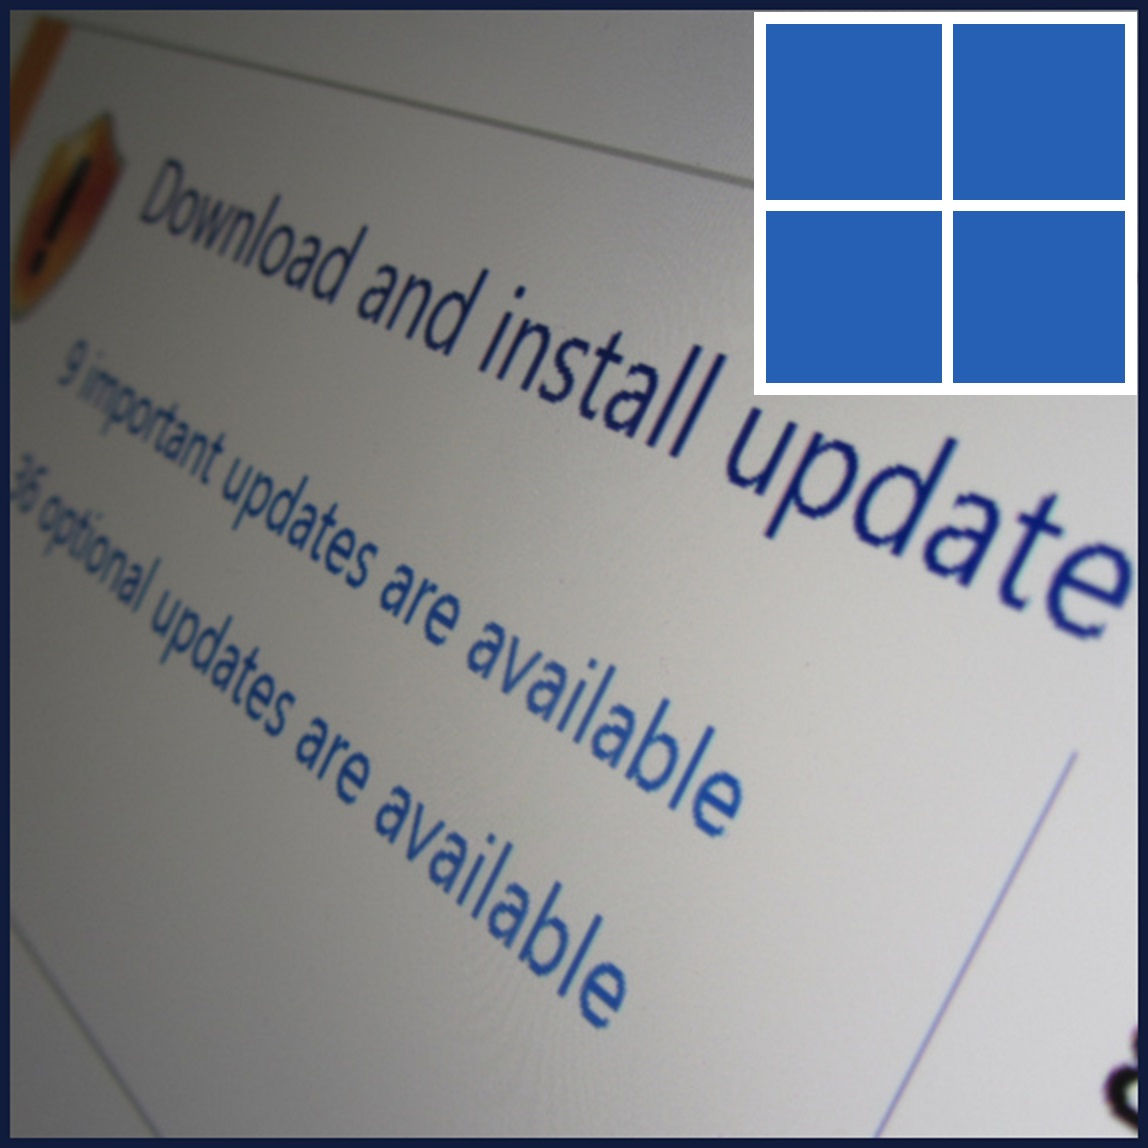 0x80070004 - Windows Update - Featured -- Windows Wally